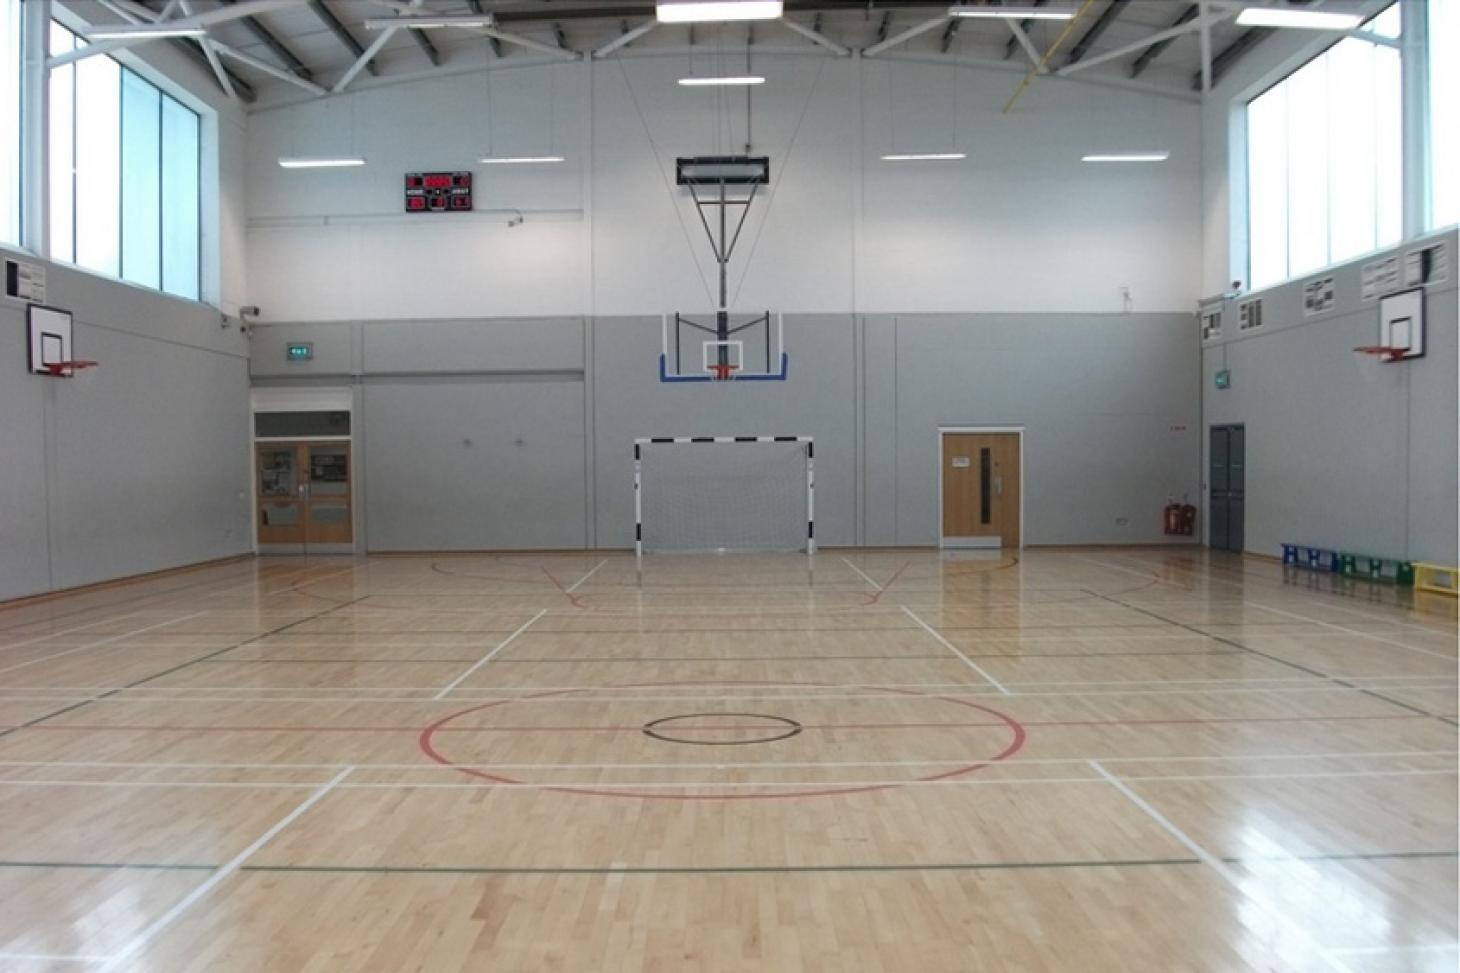 Mountview Youth & Community Centre Indoor   Hard badminton court